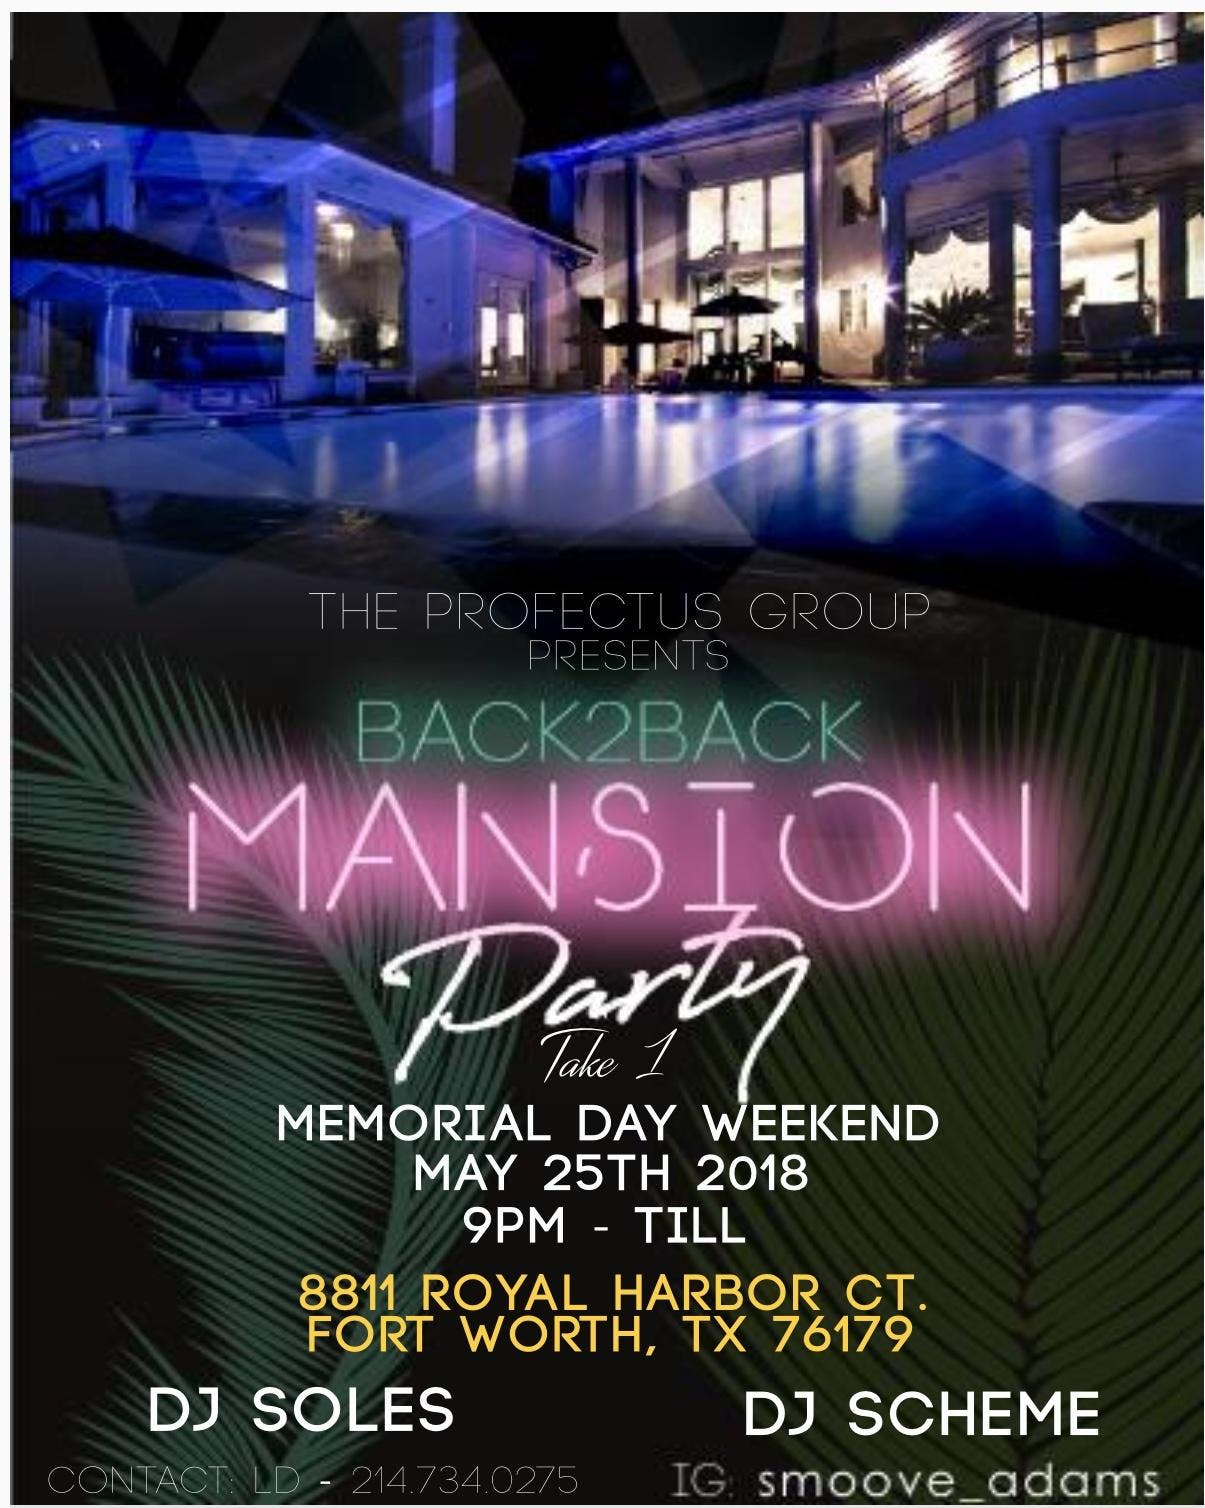 B2B Mansion Party Take 1